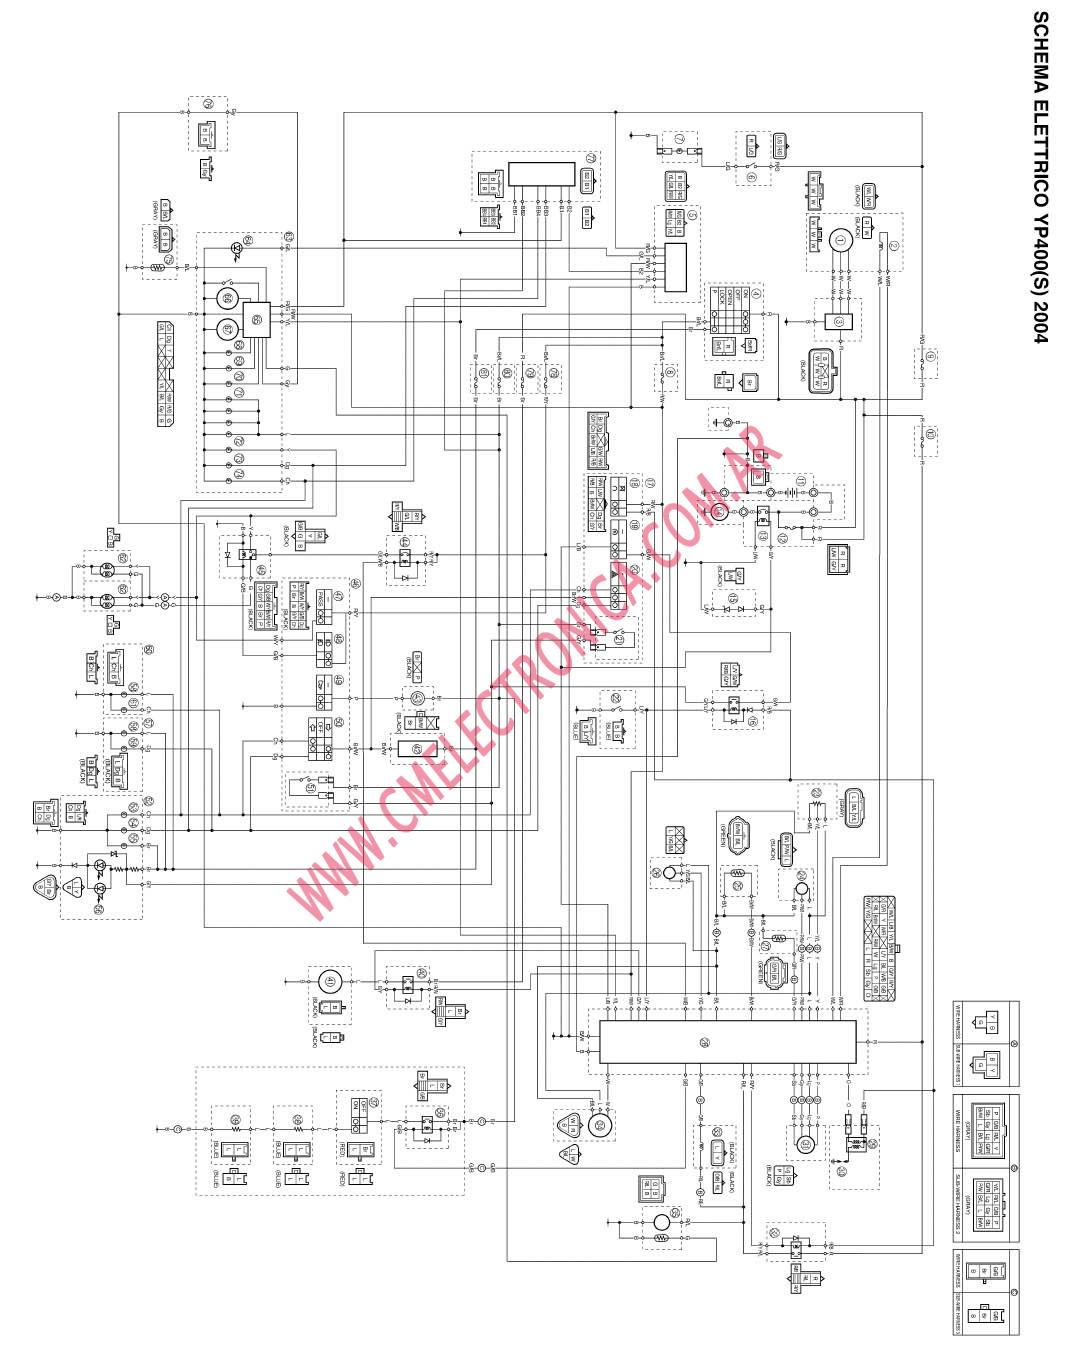 1978 honda cb400 wiring diagram sample visio network 4 best library electrical of suzuki gn400 sv650 1979